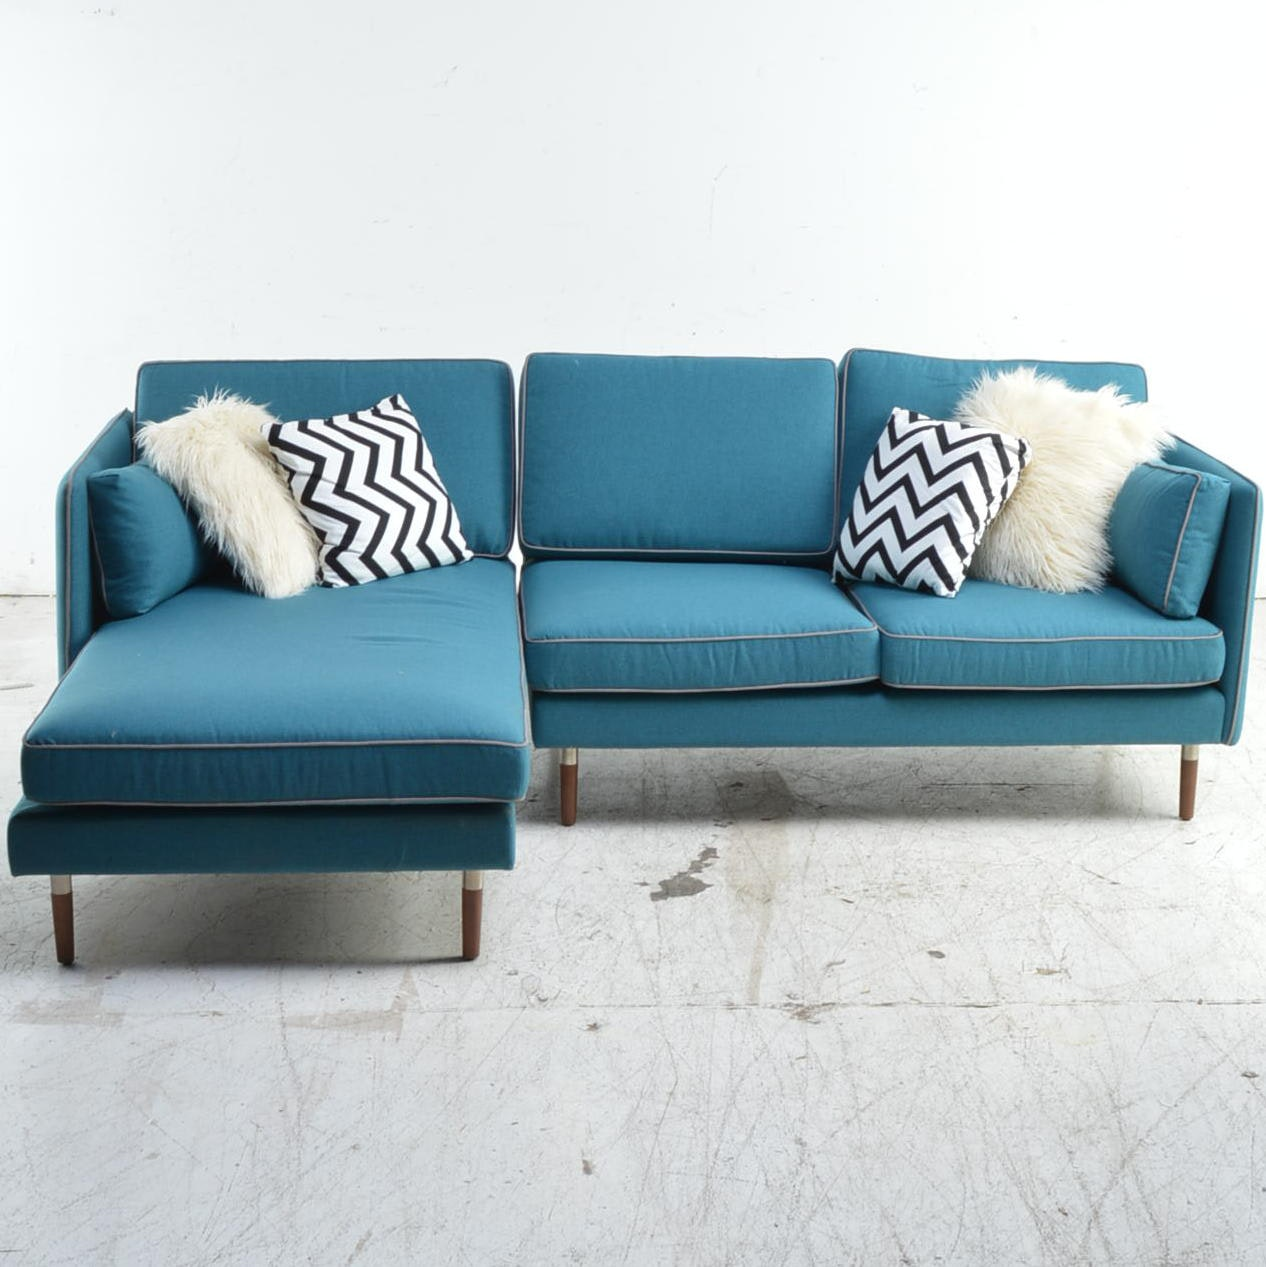 Mid Century Modern Style Blue Upholstered Sectional Sofa ...  sc 1 st  Everything But The House : midcentury modern sectional - Sectionals, Sofas & Couches